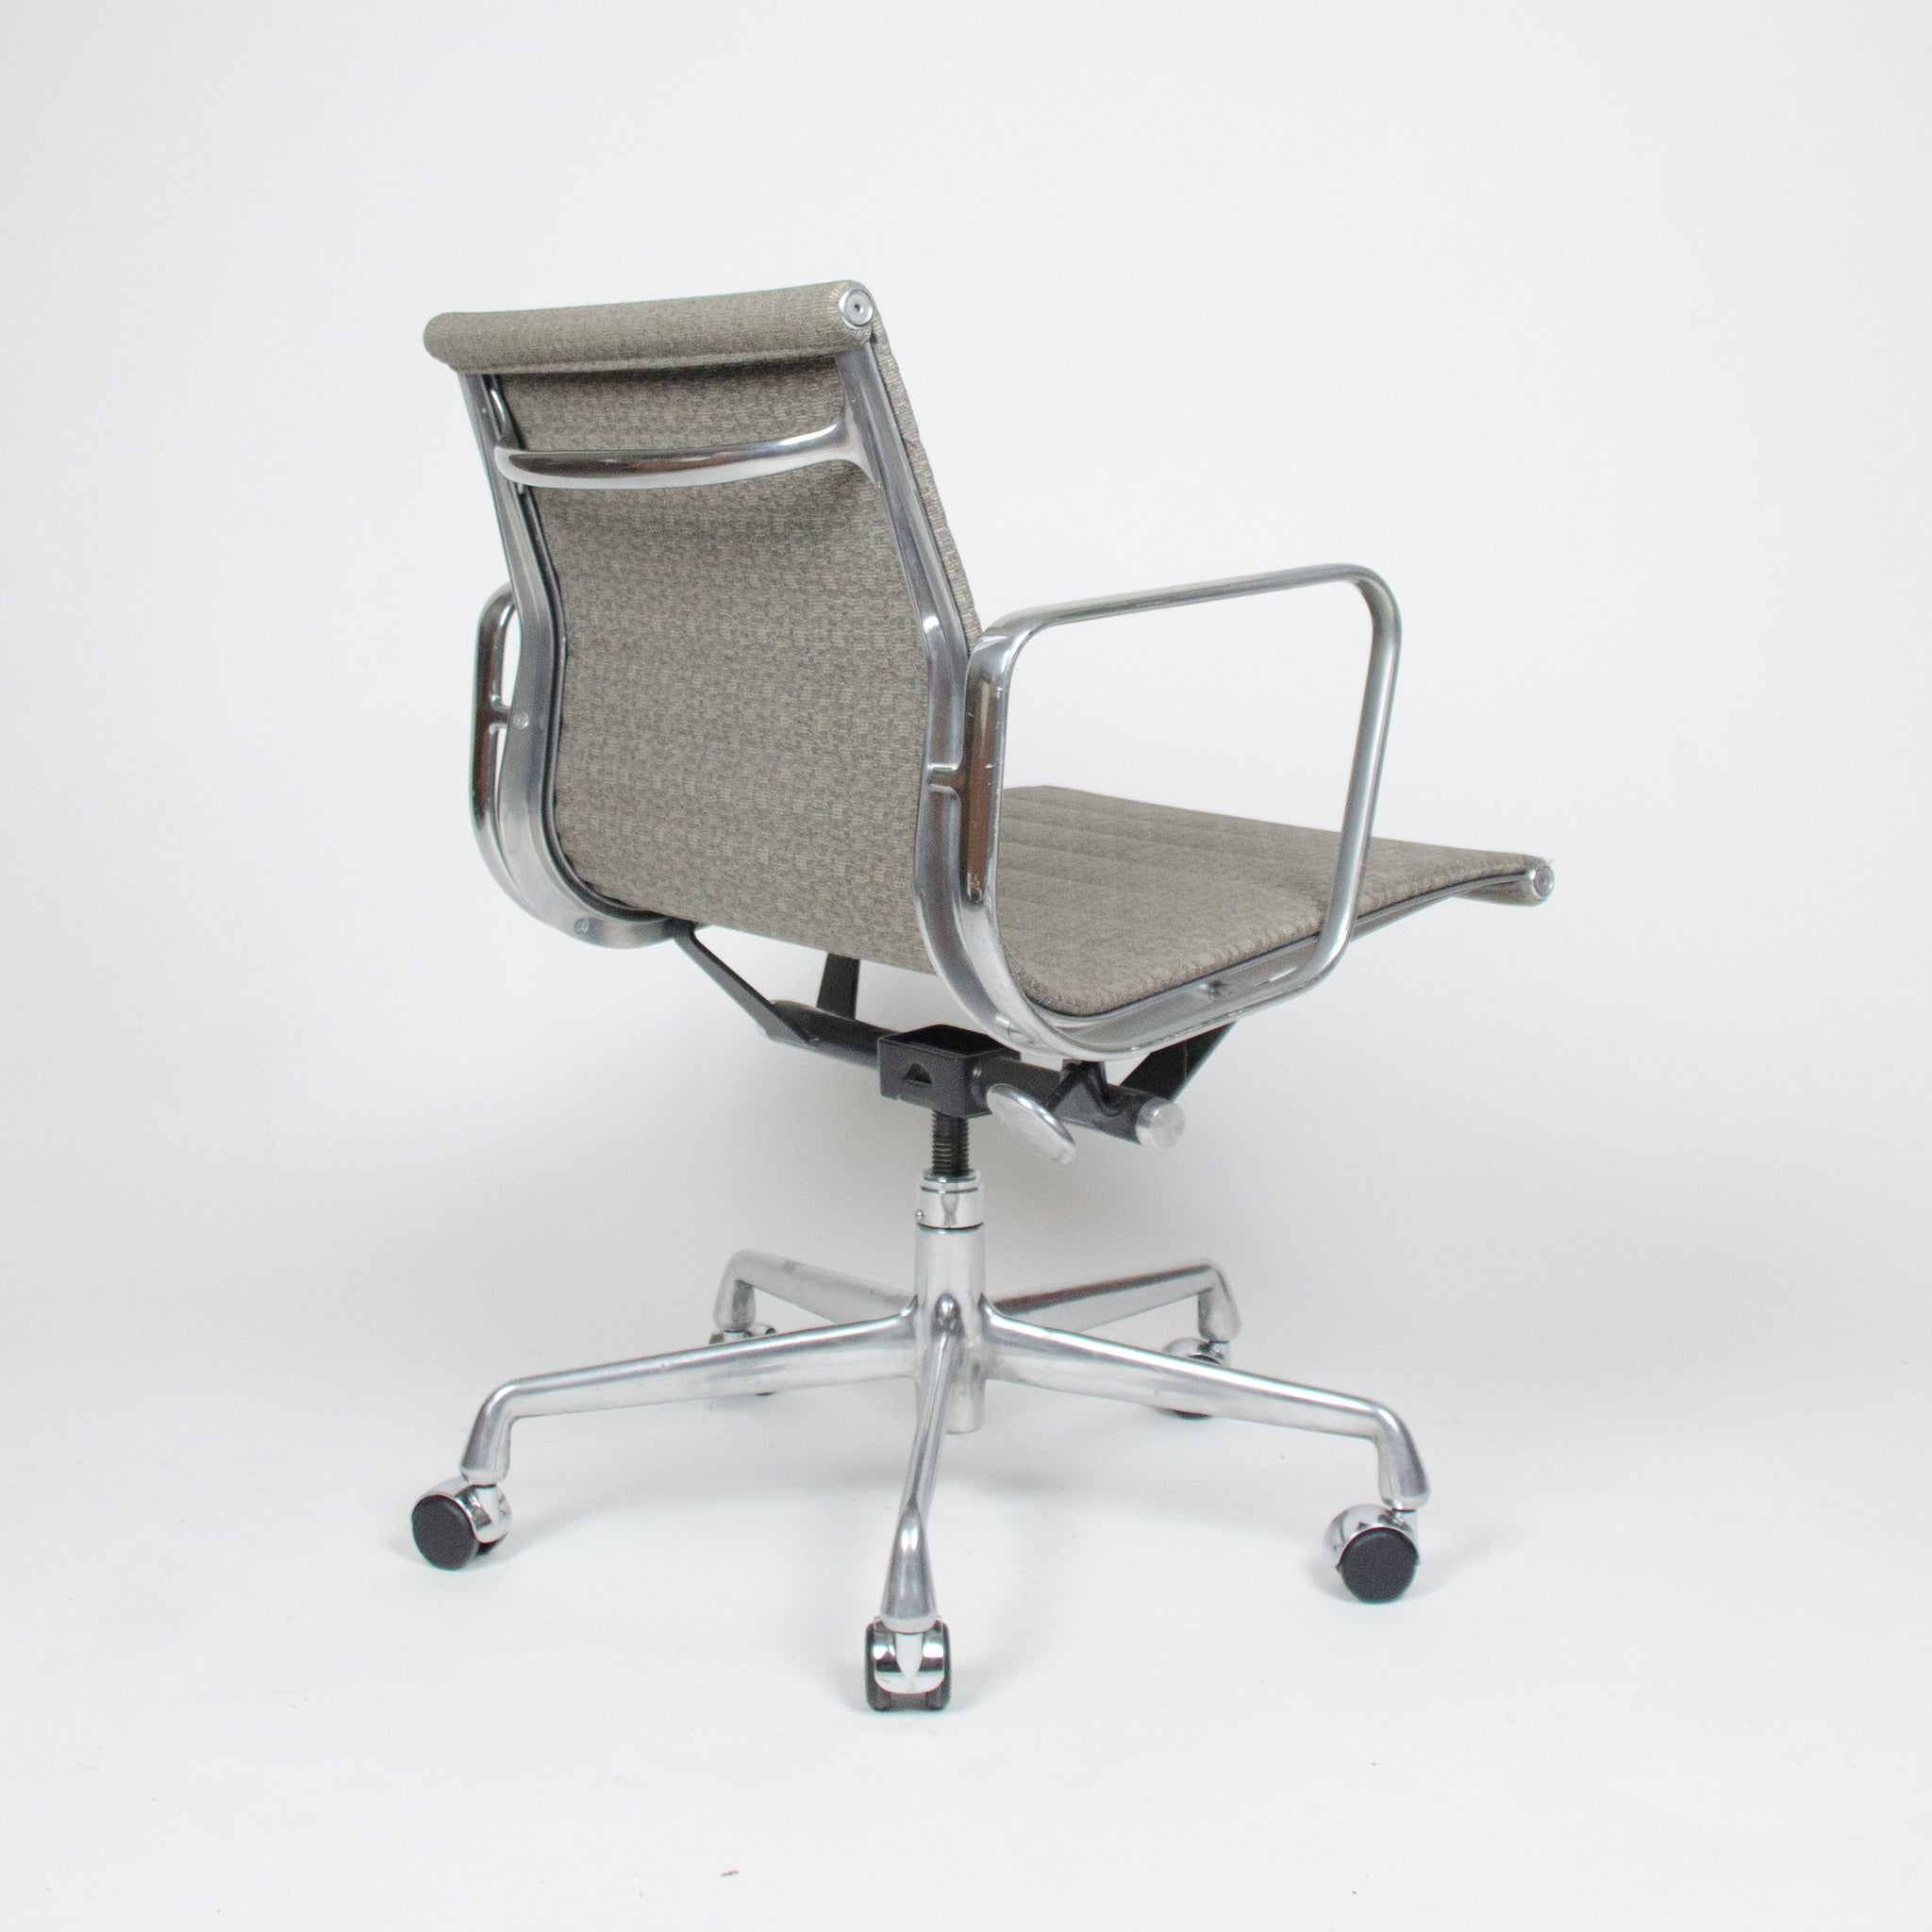 SOLD Eames Herman Miller Fabric Executive Aluminum Group Desk Chairs 13x